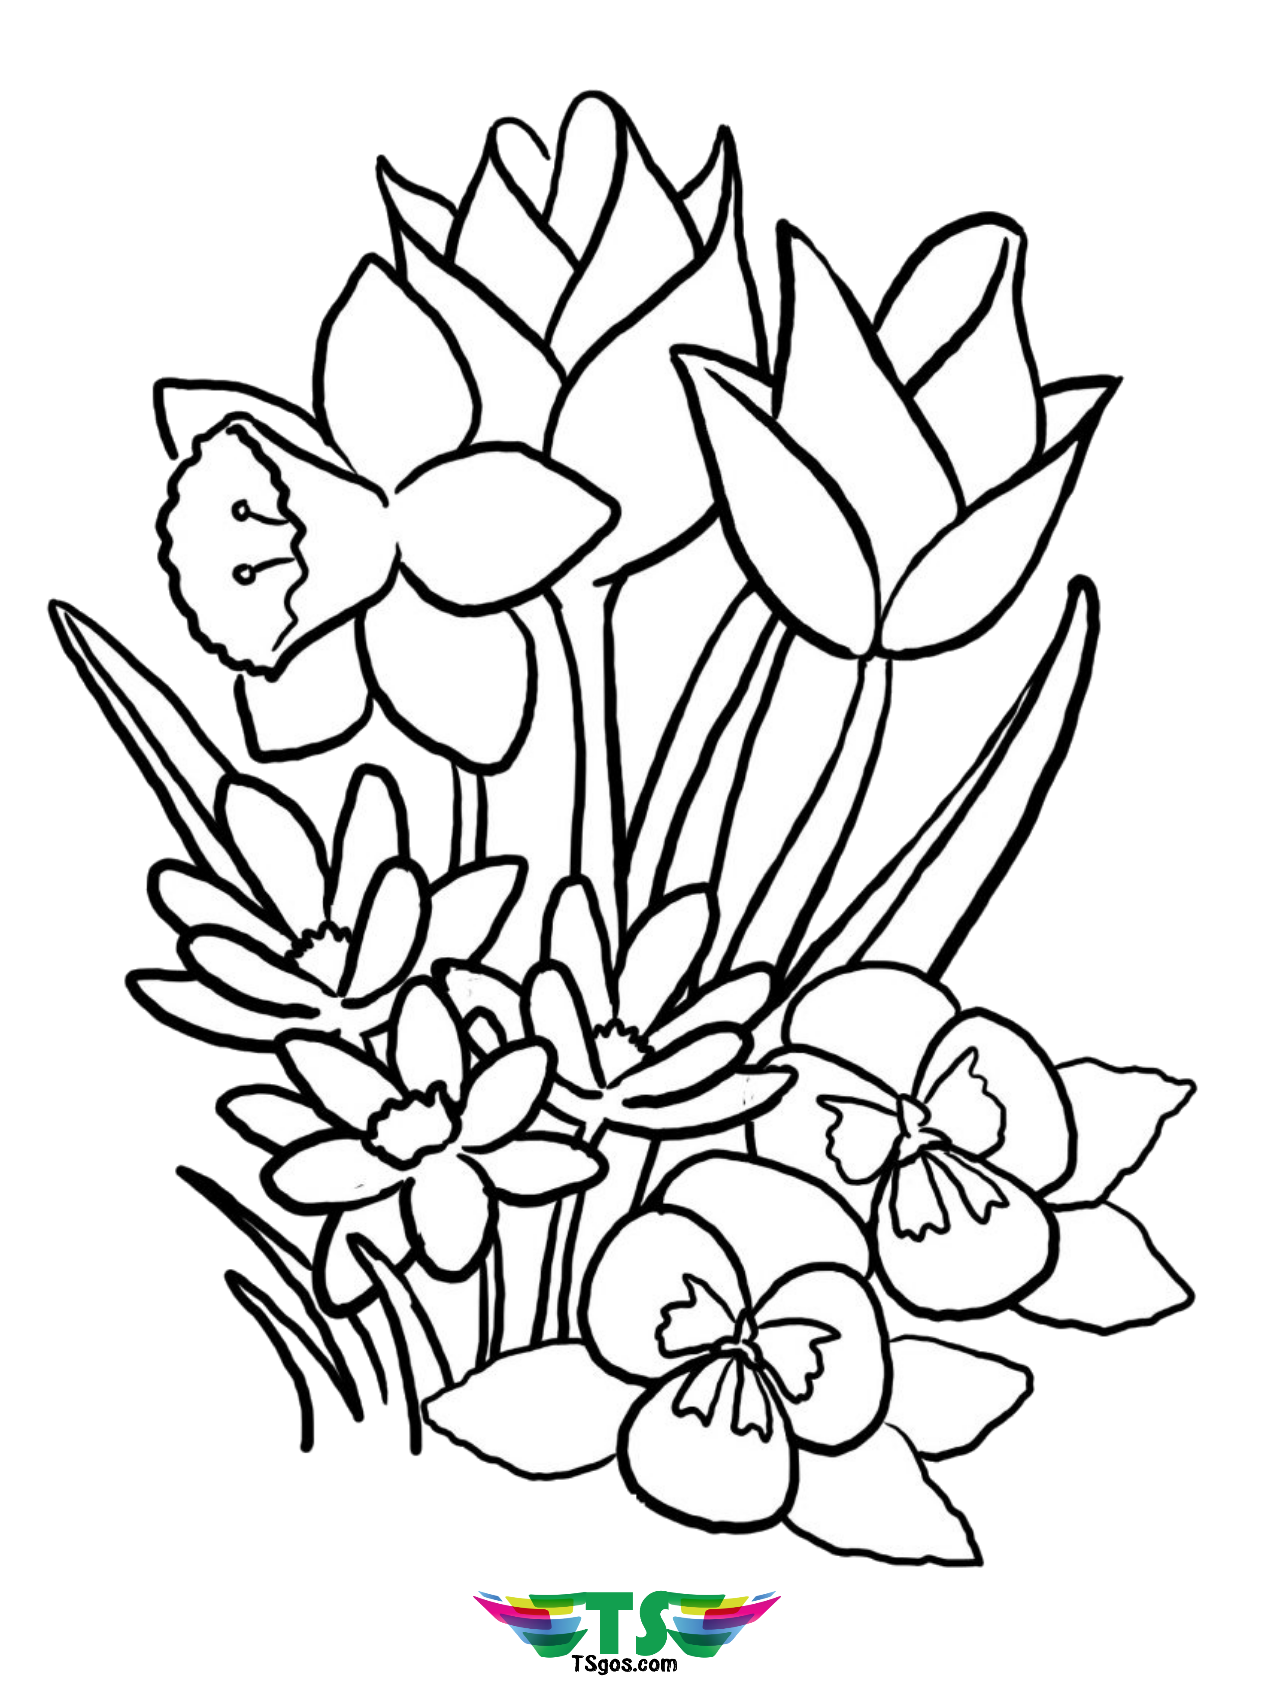 colouring page of flowers free easy to print flower coloring pages tulamama page colouring flowers of